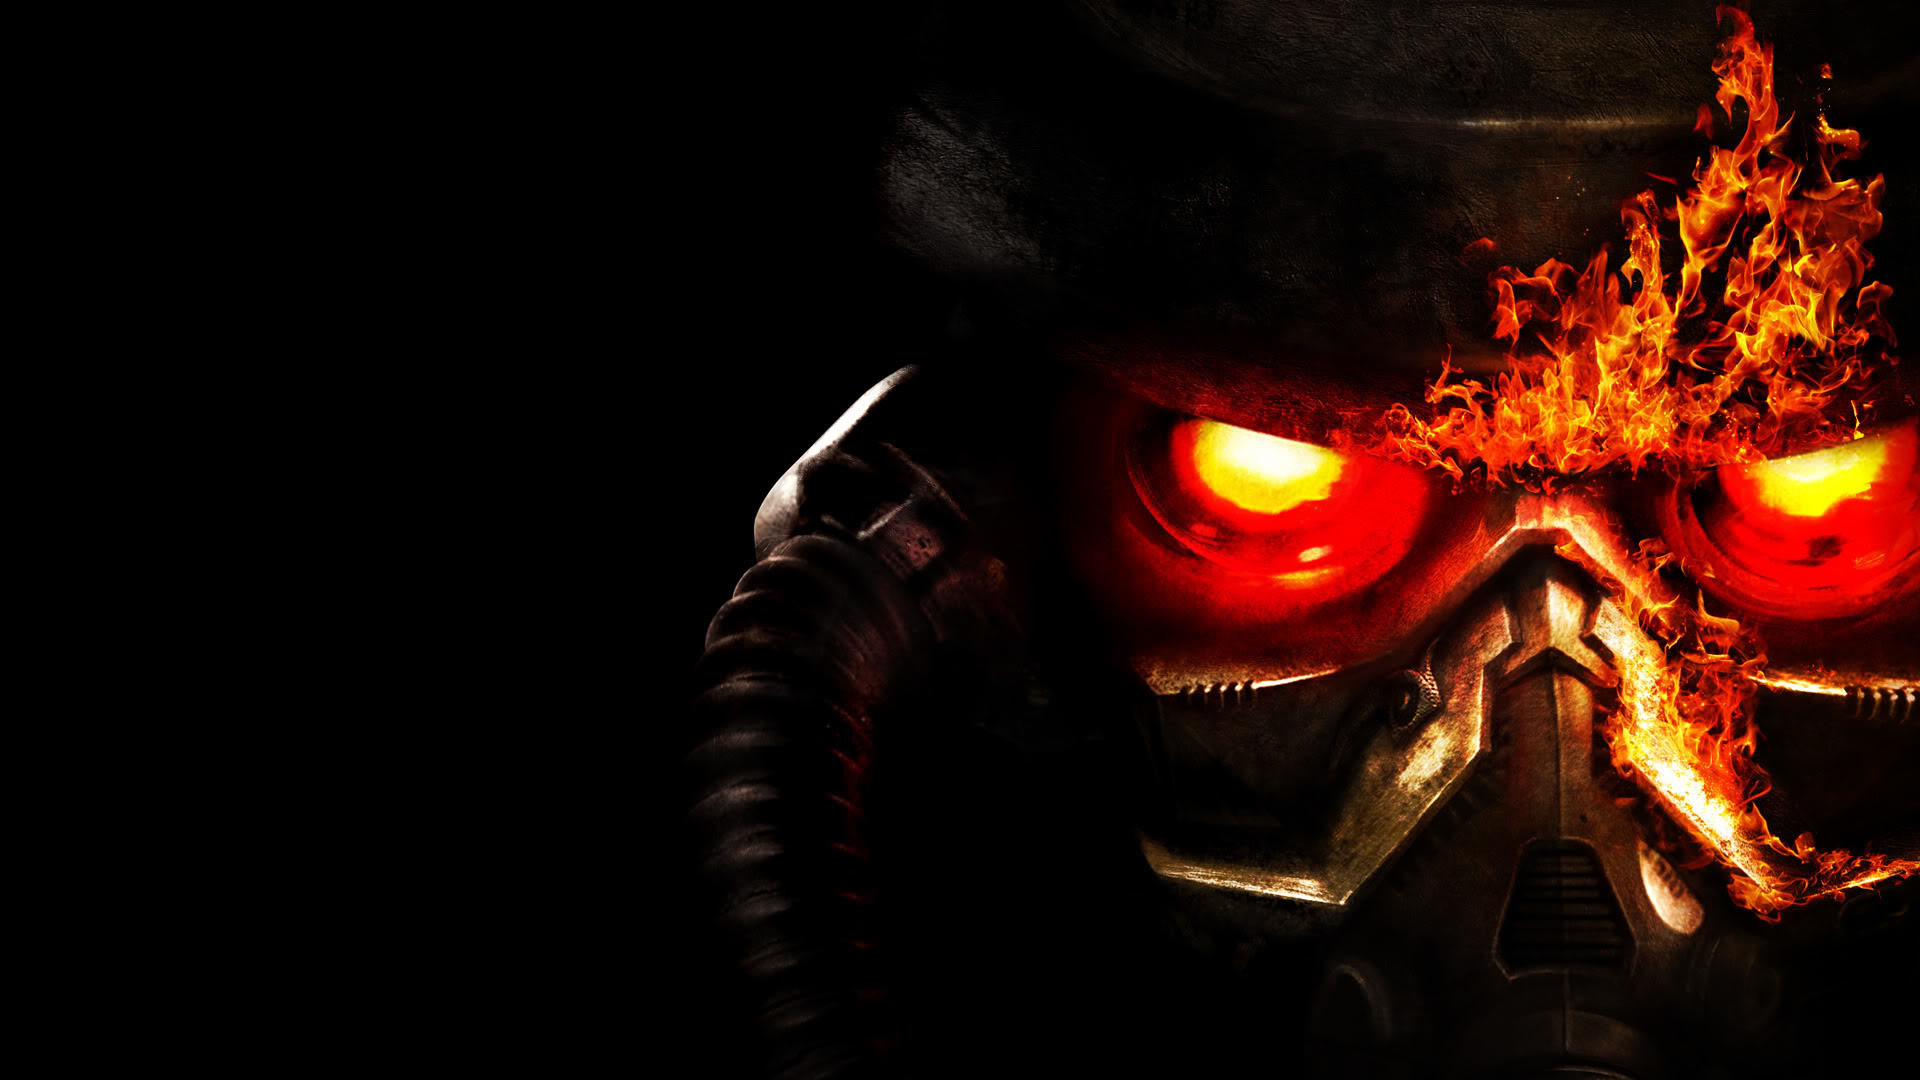 PS3 Wallpaper Size 63 Images